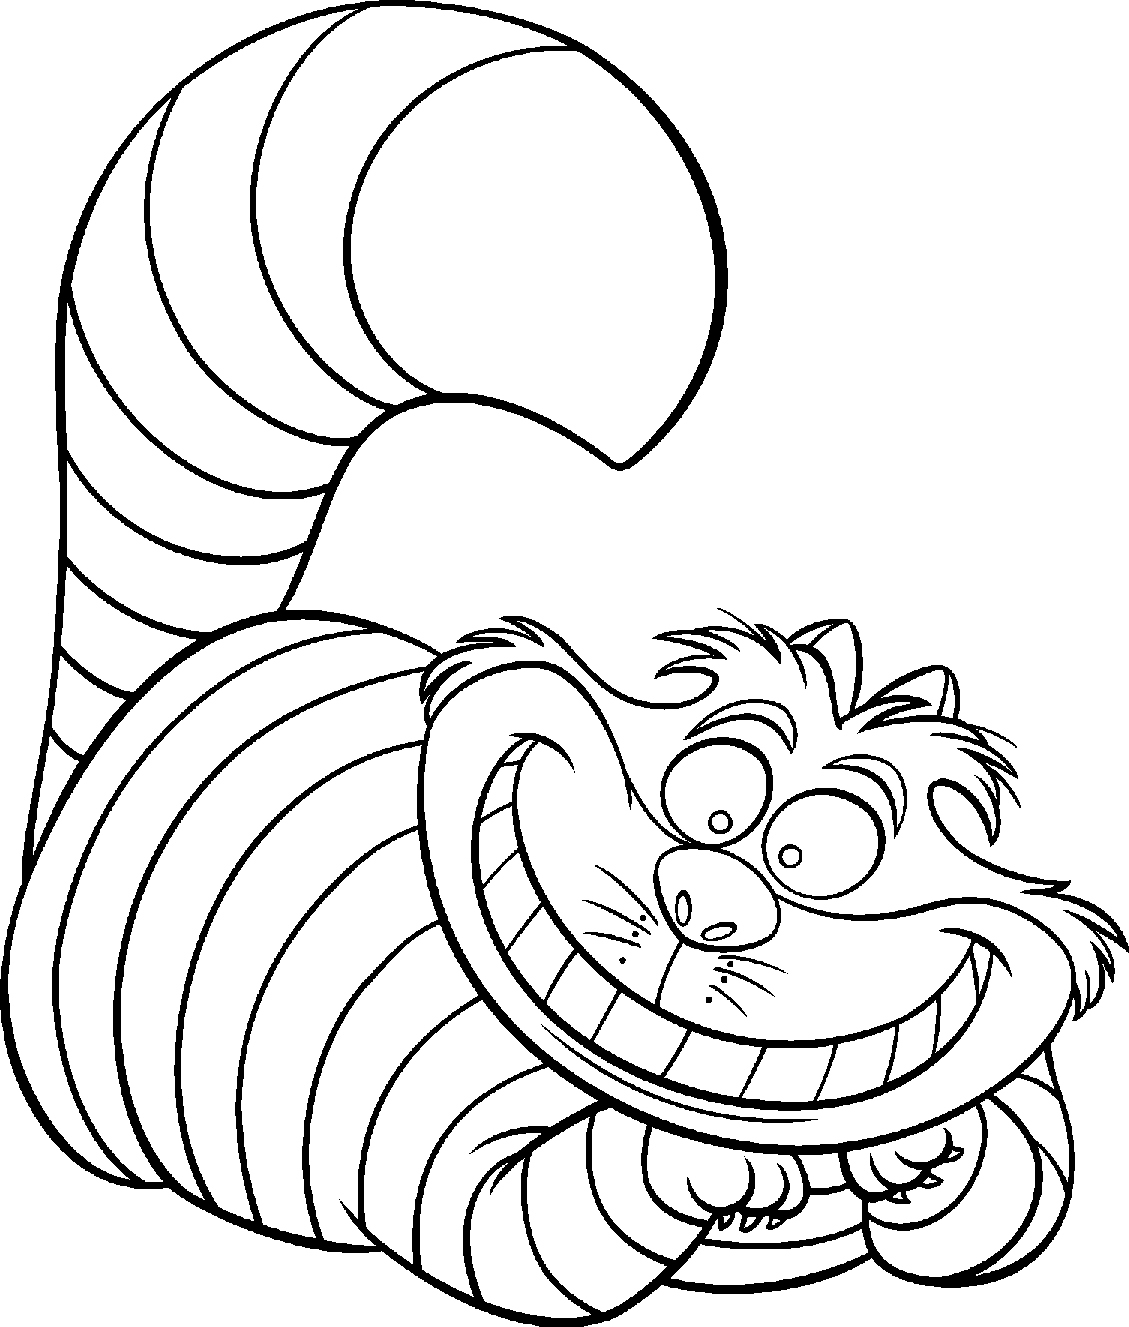 funny coloring pages to print funny spongebob coloring page free printable coloring print to coloring pages funny